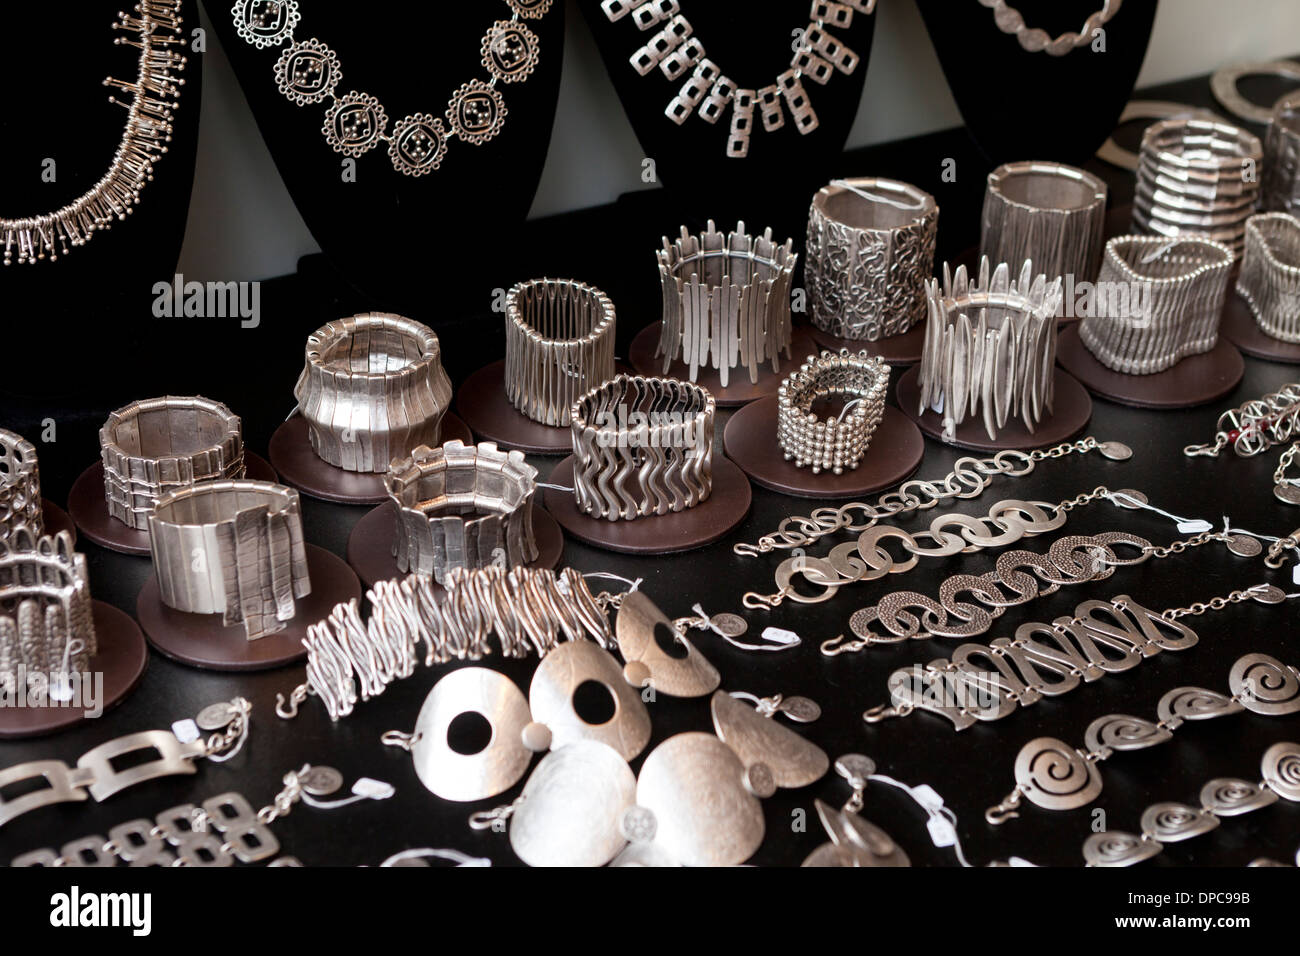 Womens stainless steel cuff bracelets on display - Stock Image